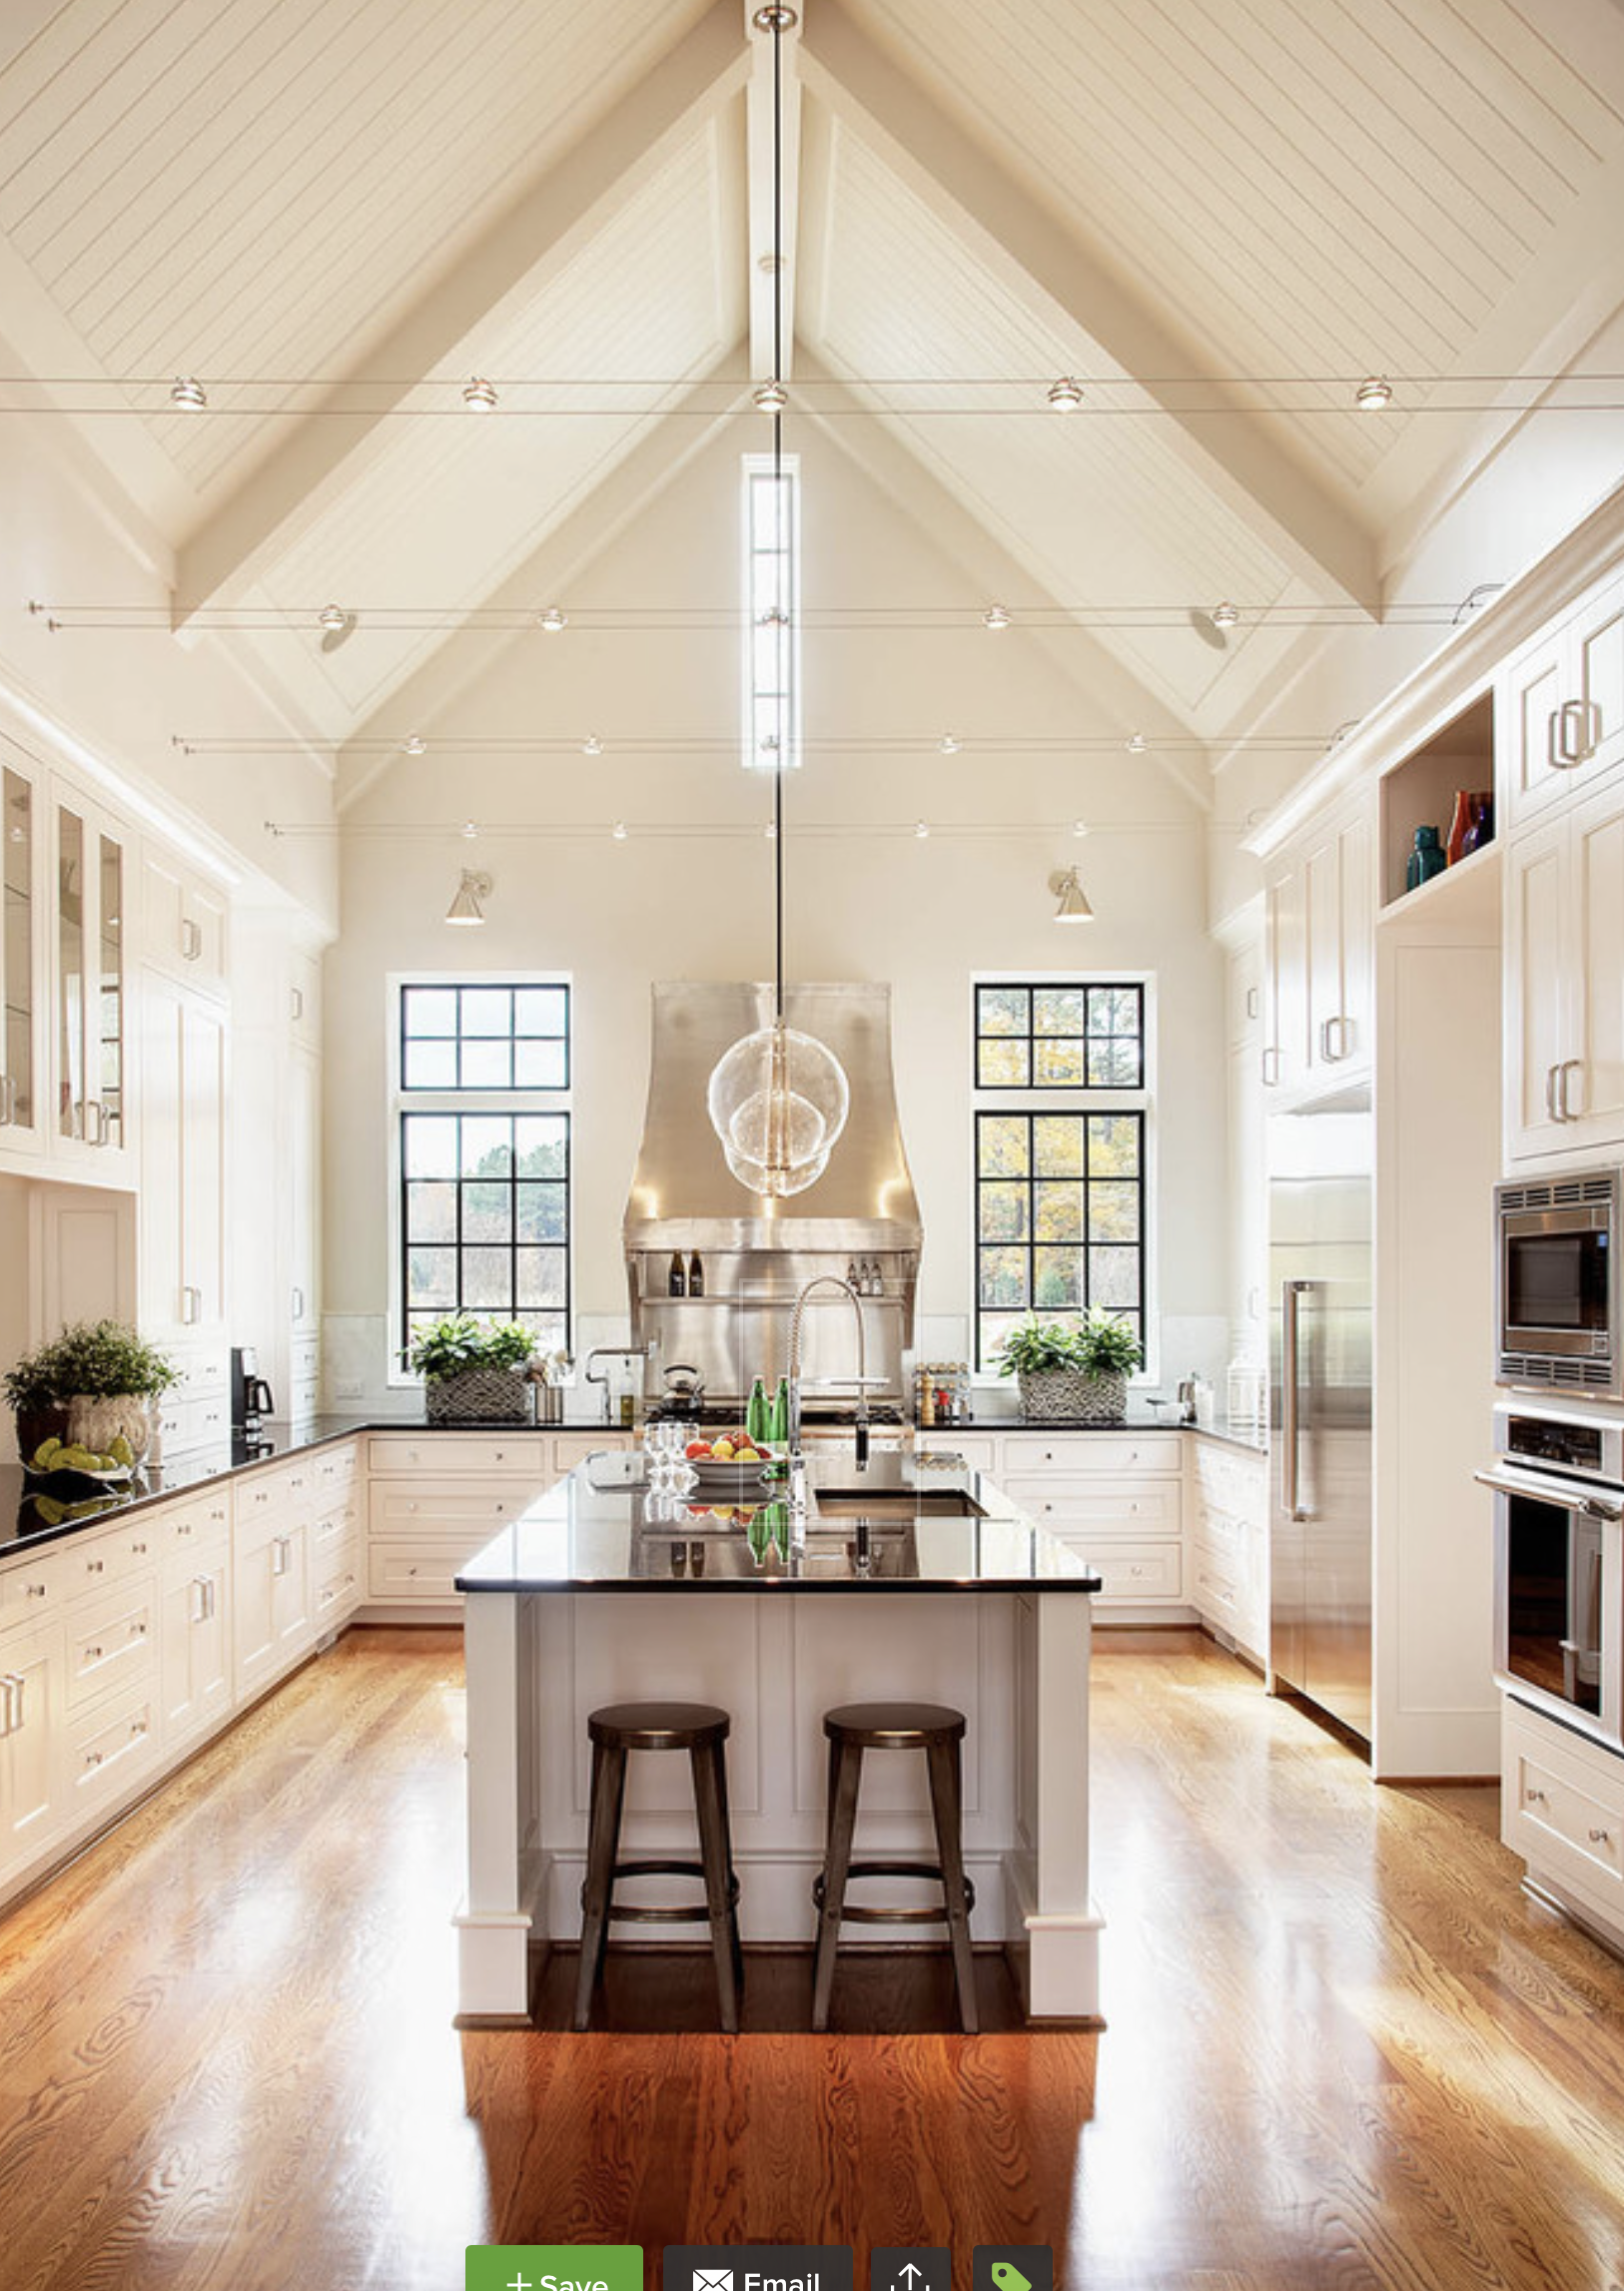 walls are Pale Oak. Ceiling is White Dove | Carpenter | Pinterest ...